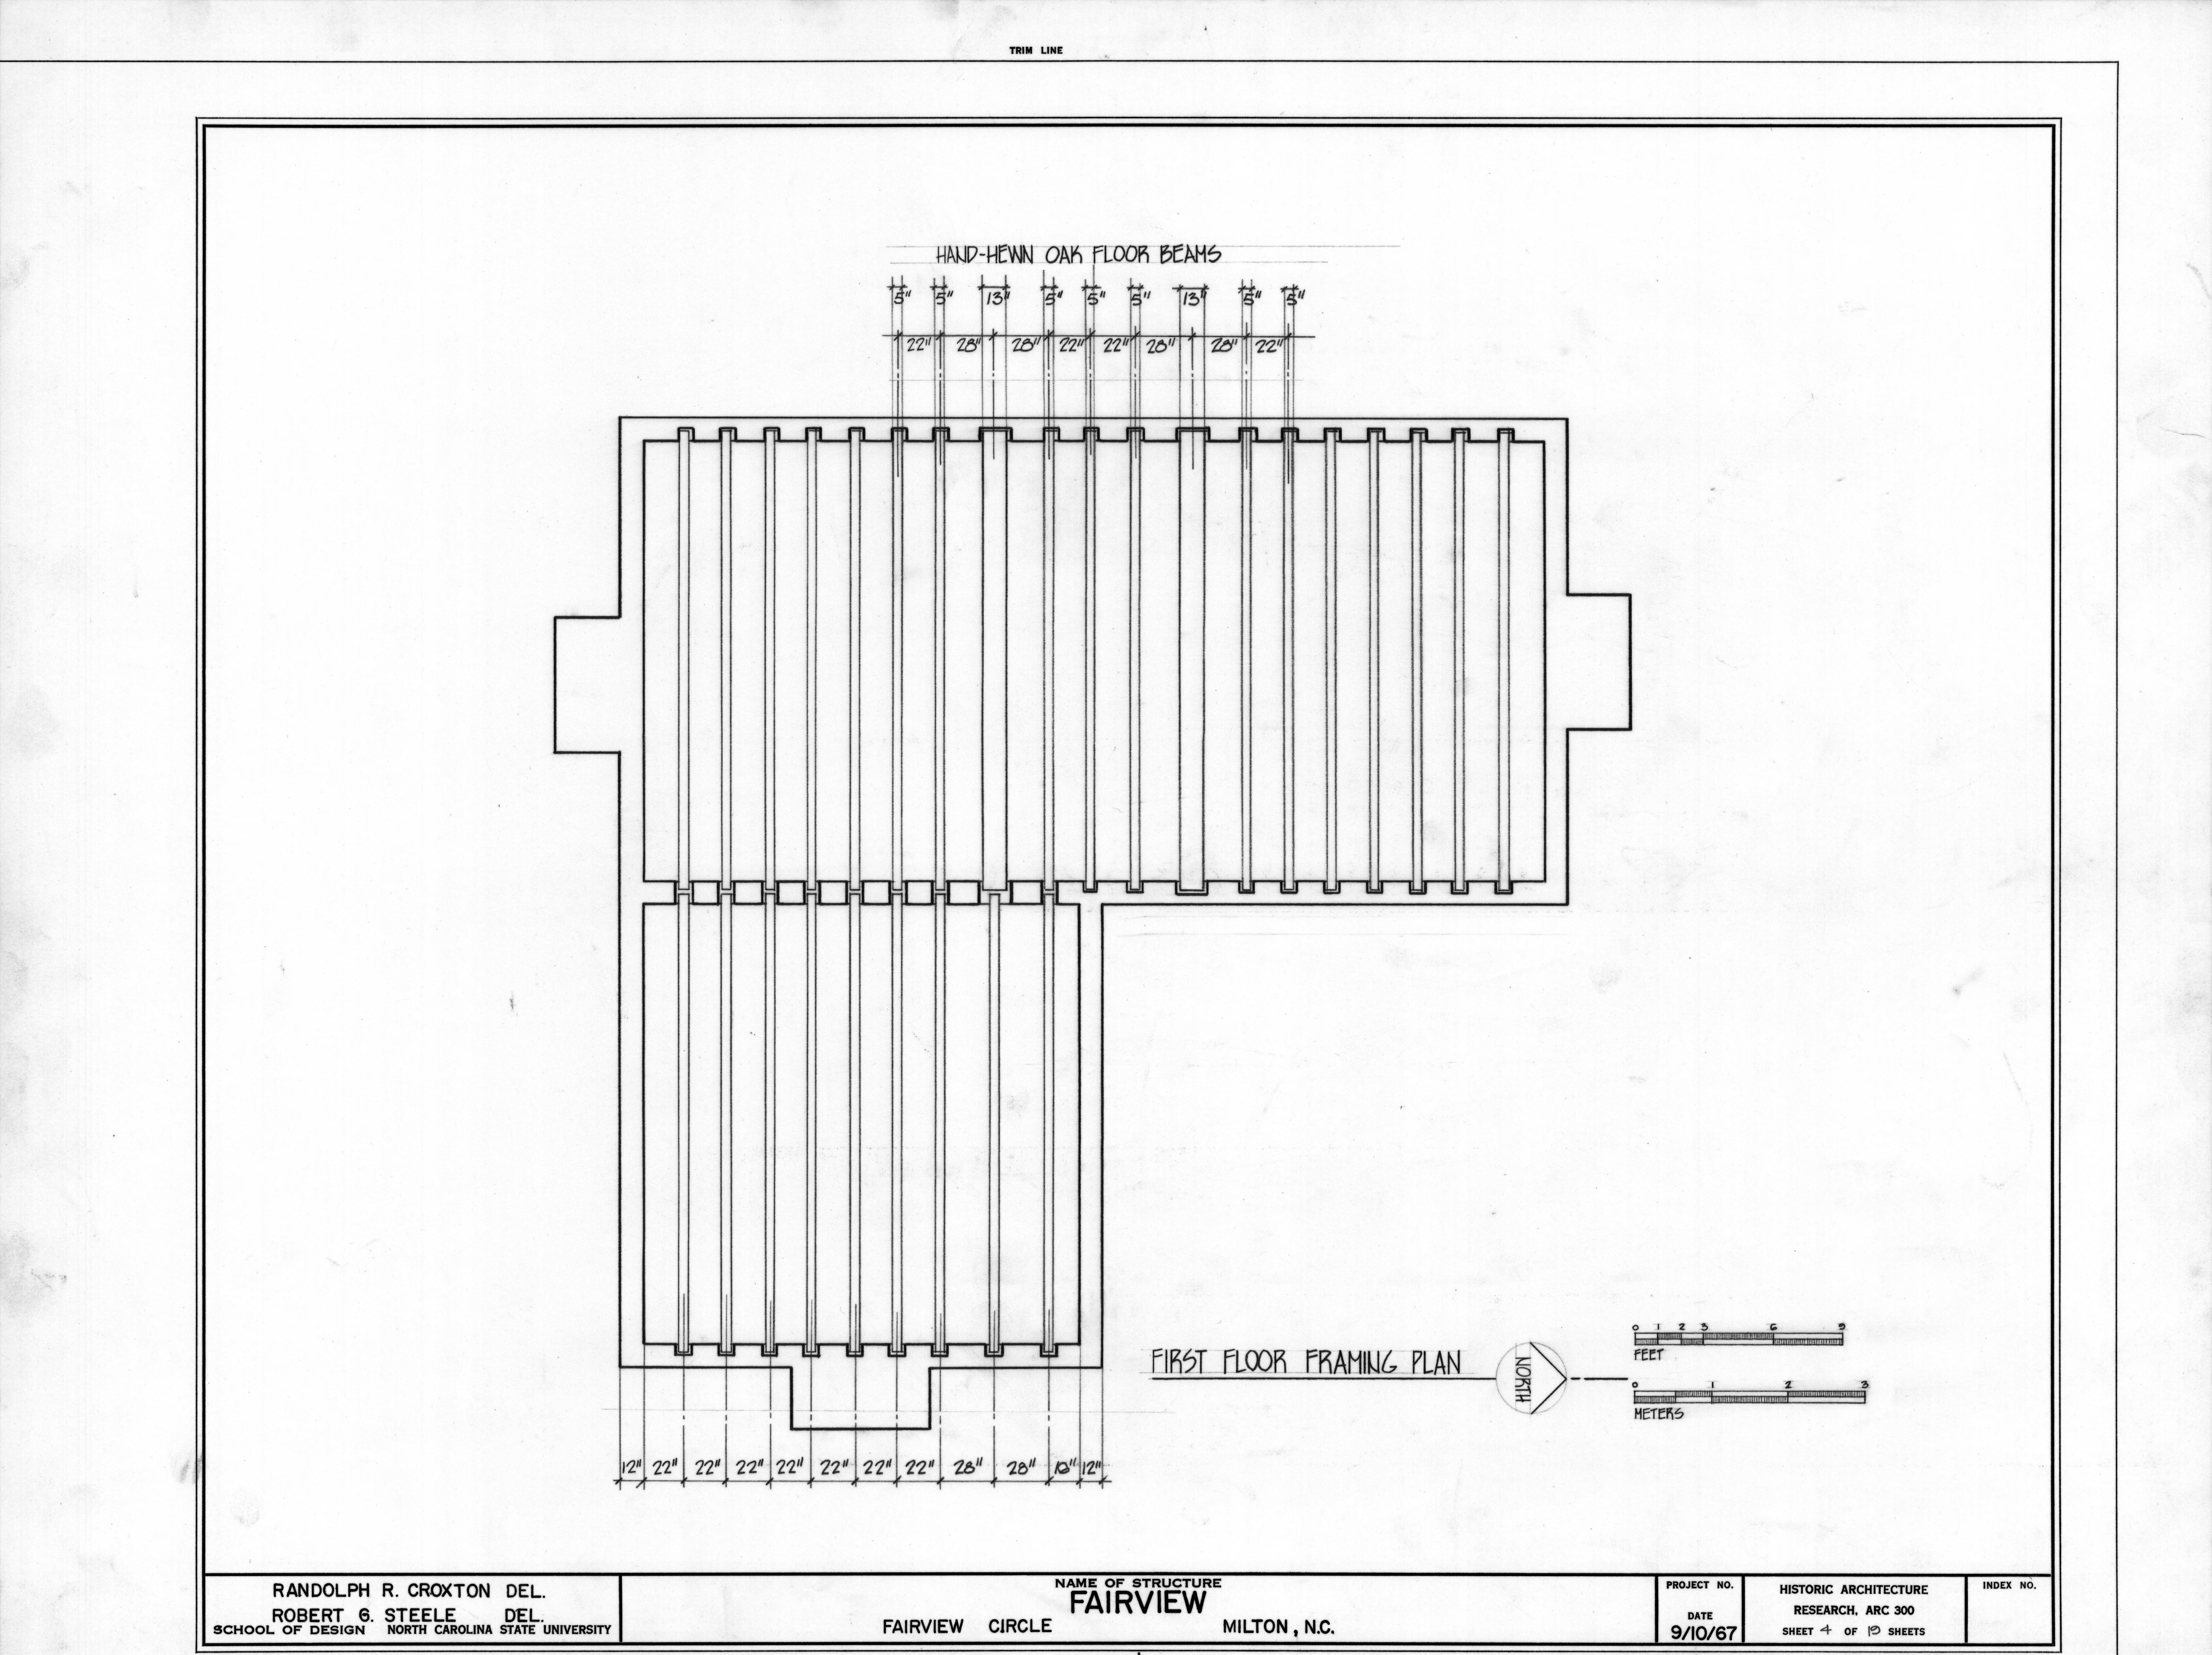 first floor framing plan asa thomas house milton north